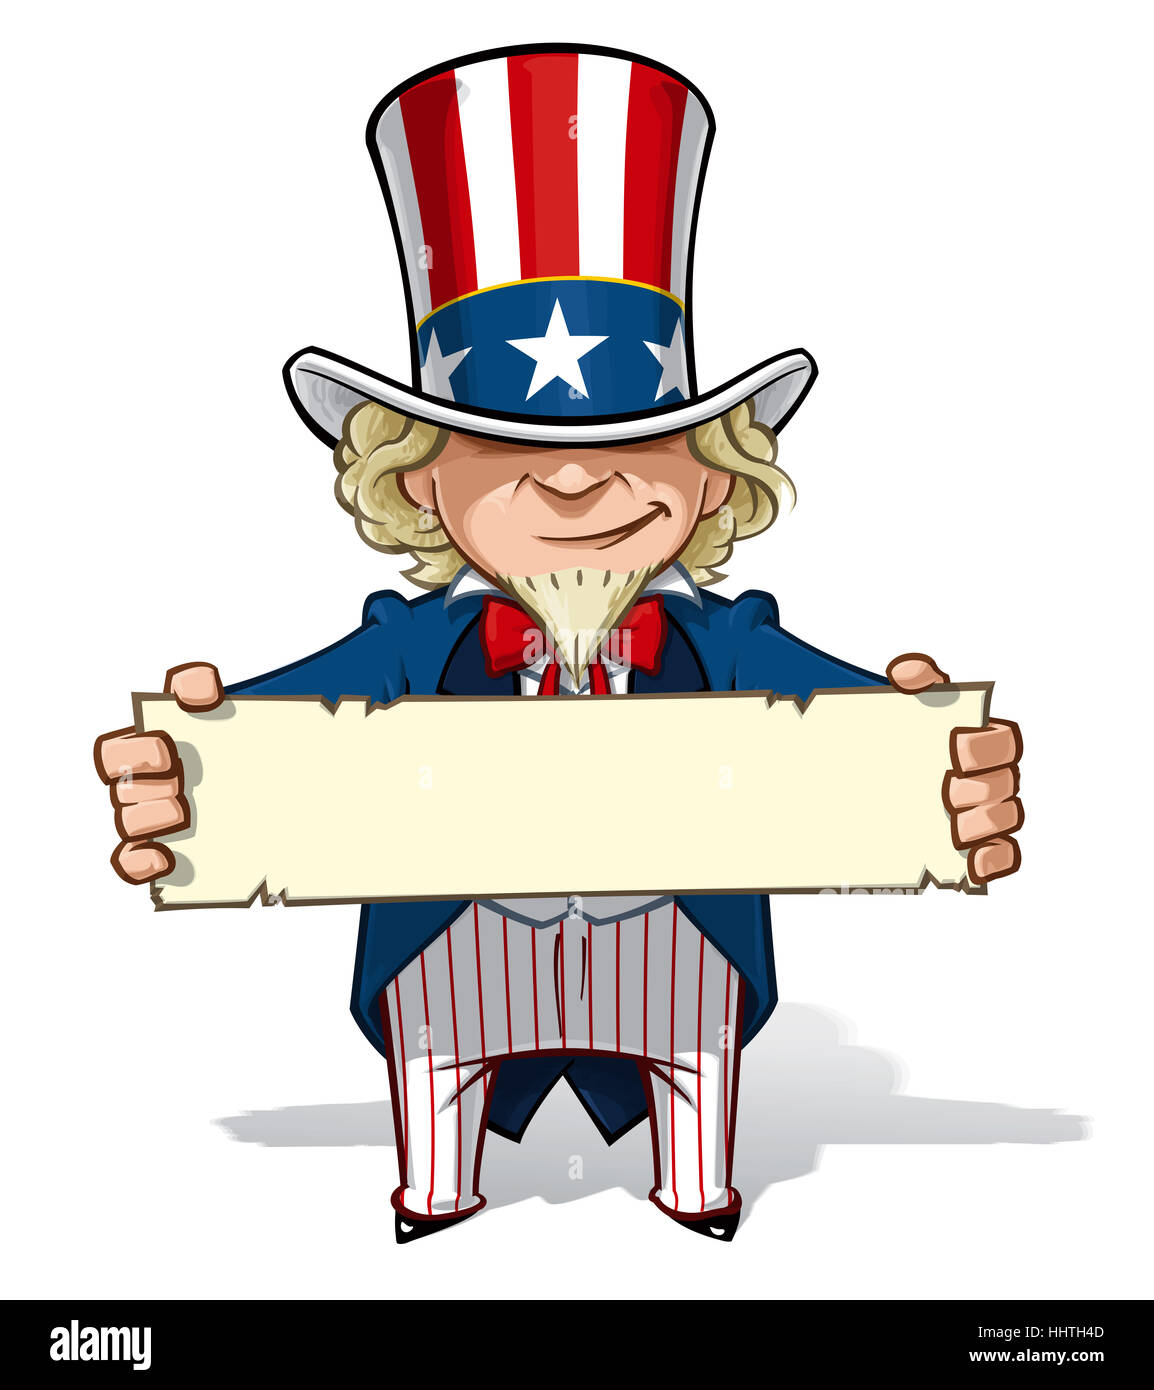 usa, america, president, elections, cartoon, blue, laugh, laughs, laughing, - Stock Image